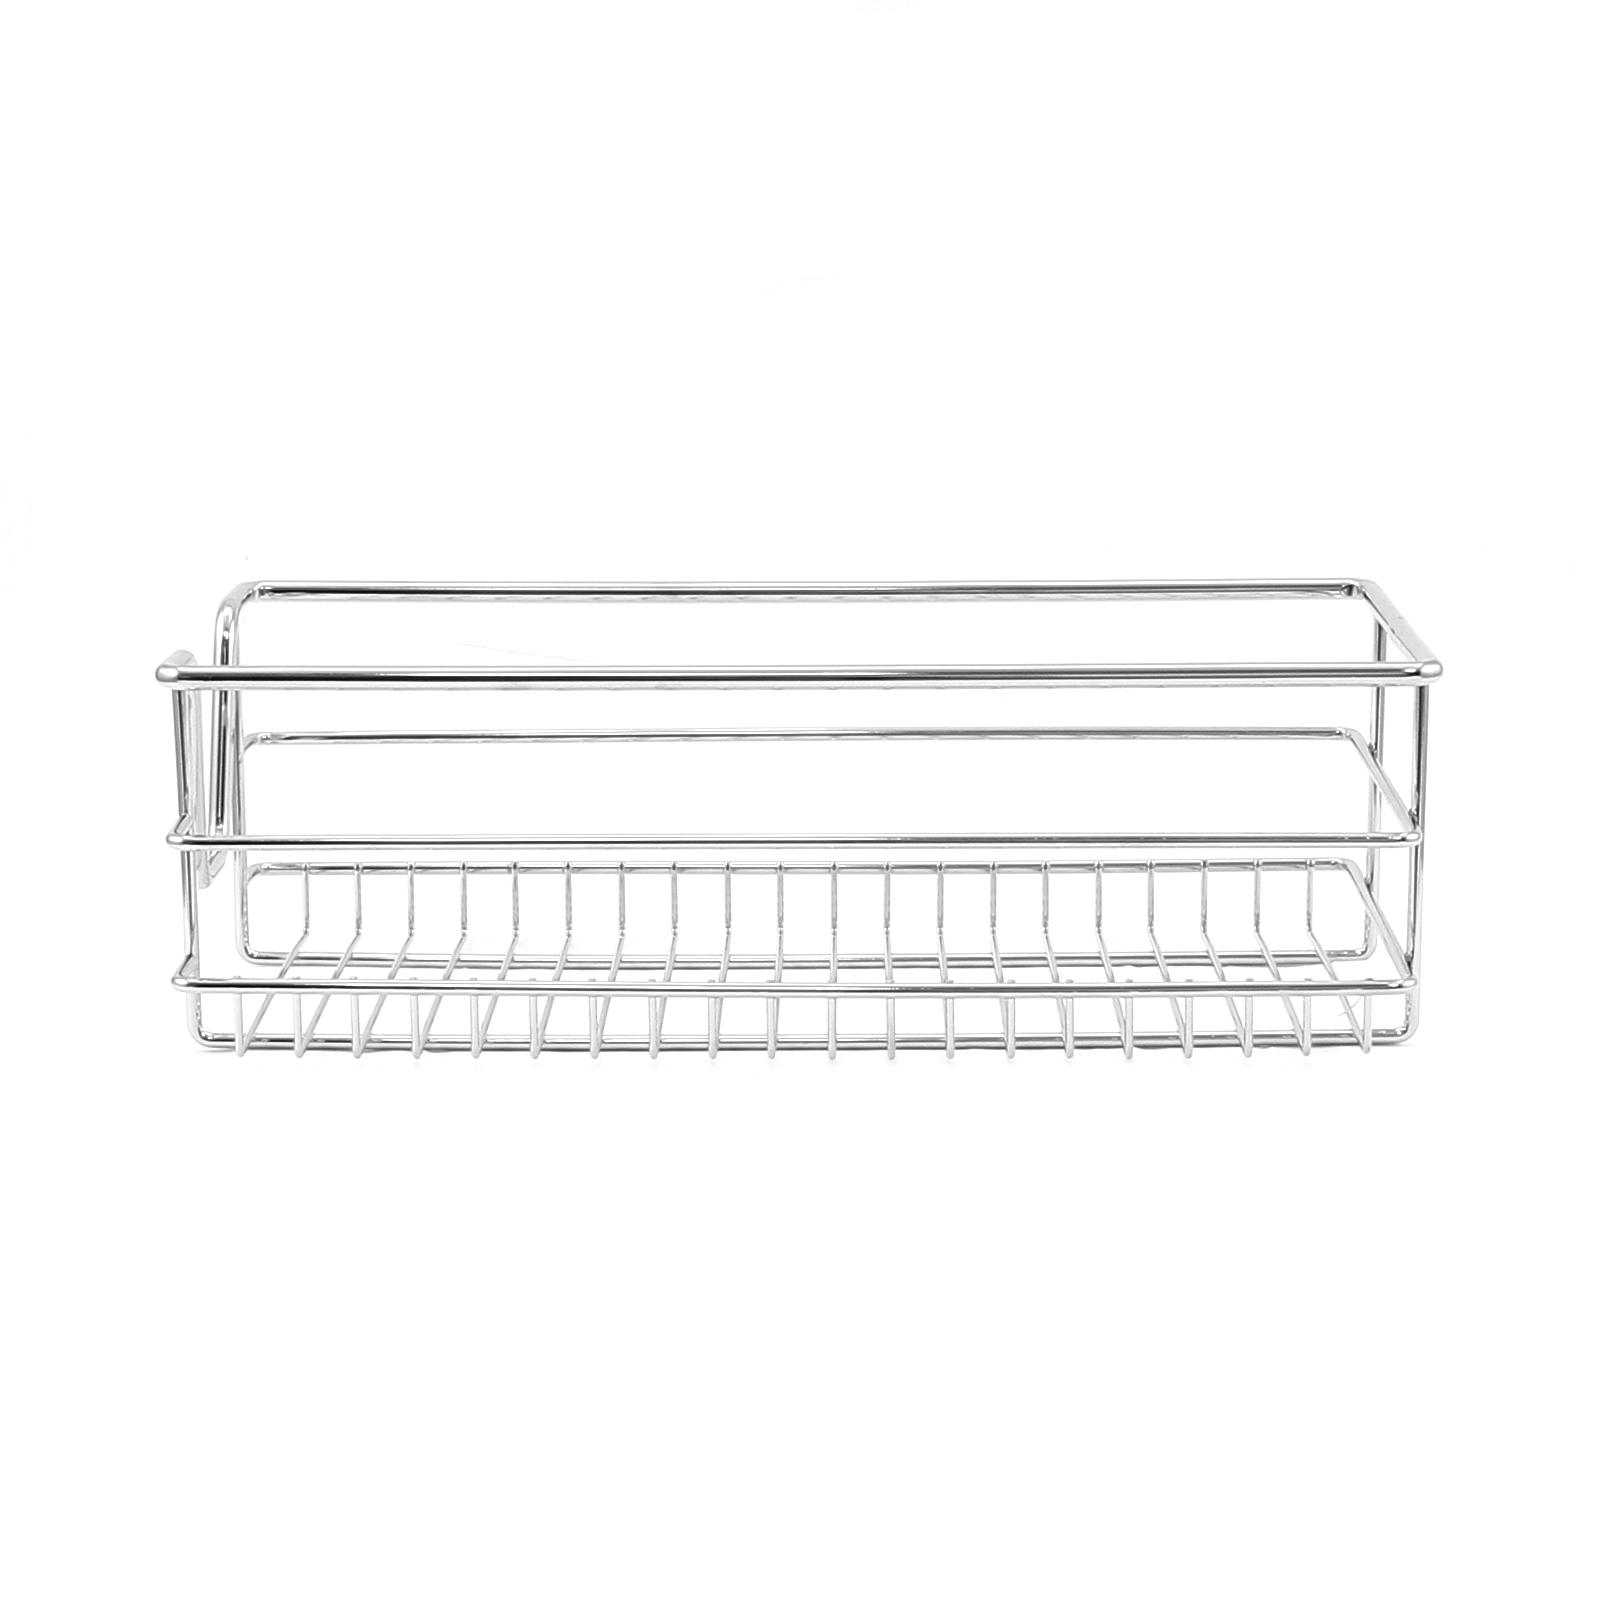 Pull Out Basket 2 Kitchen Wire Baskets Pull Out Storage Drawer Slide Out